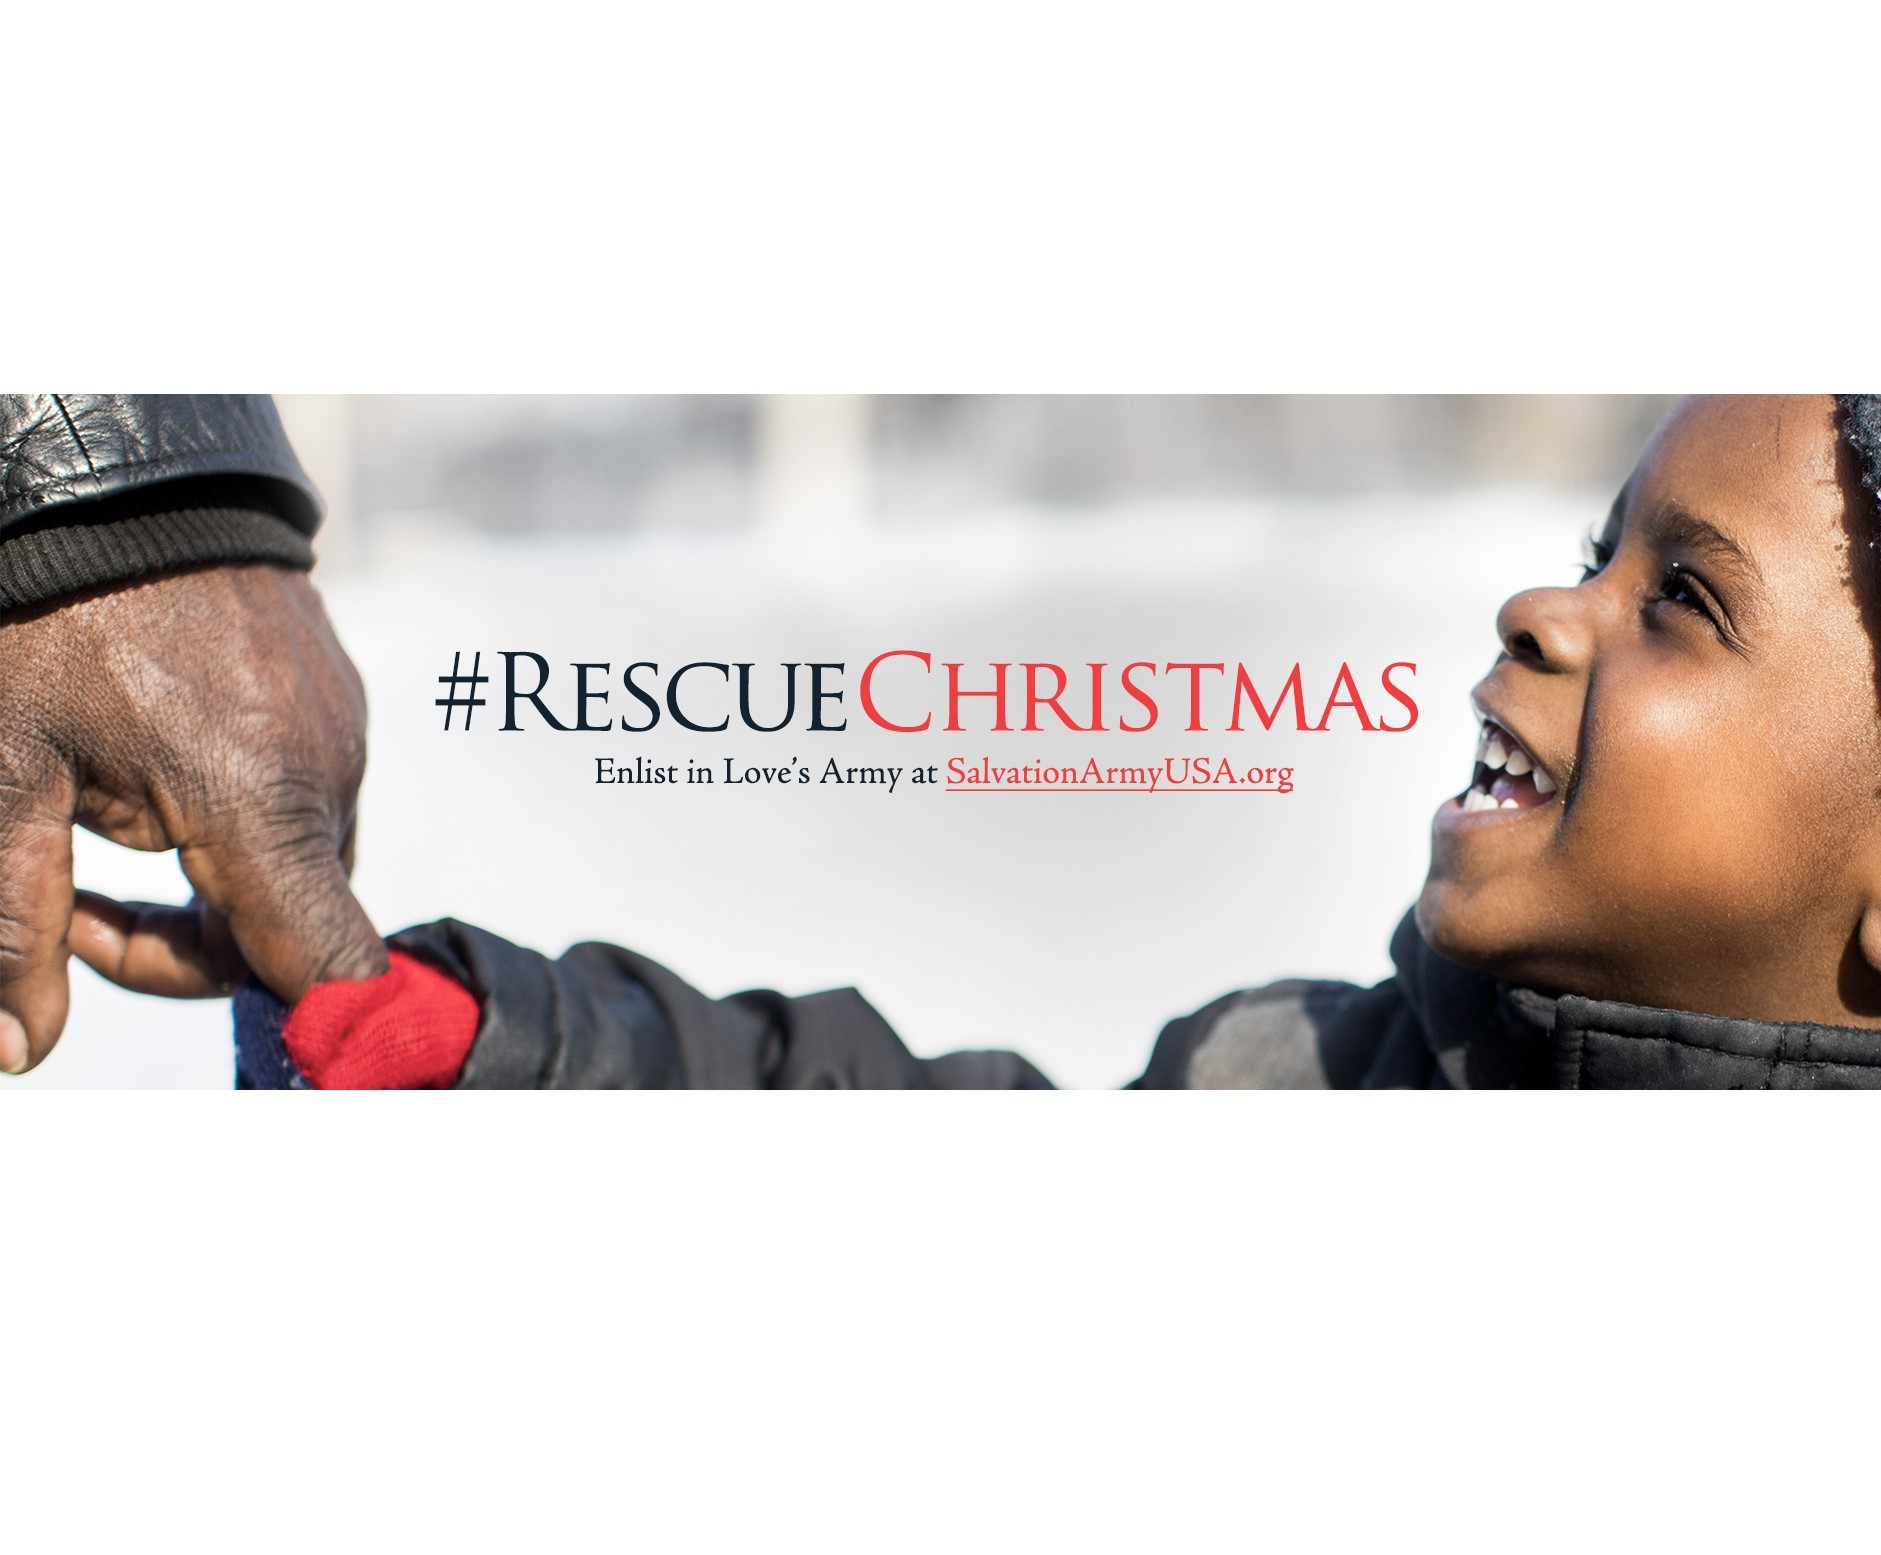 Rescue christmas cover photo 3 square